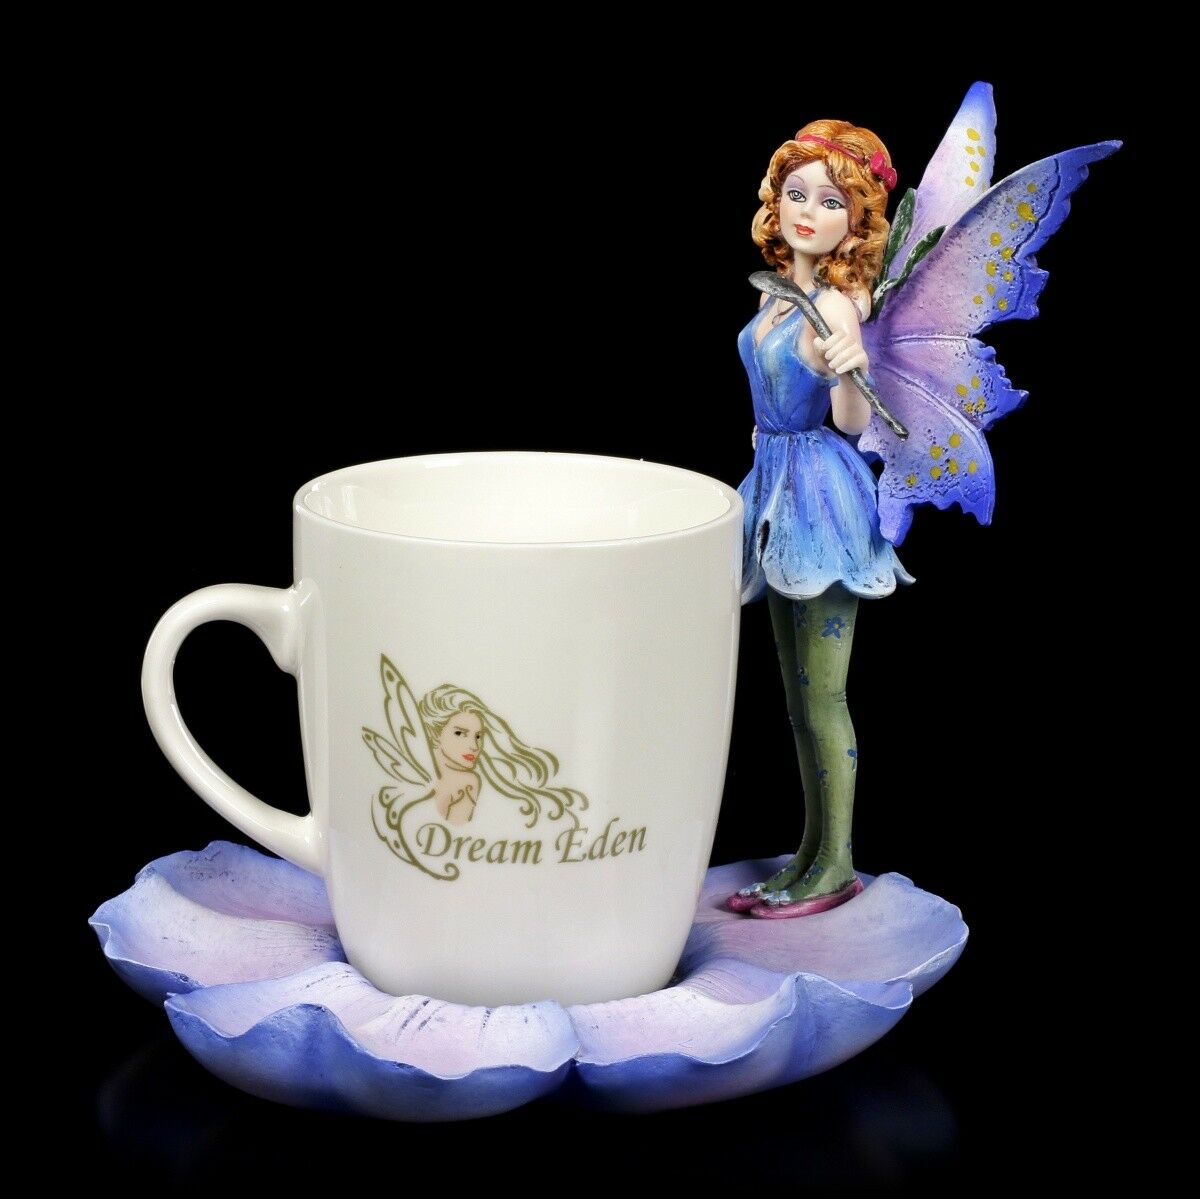 Elf Figures with Cup - bleu Fairy Mira Fantasy Fairy Coffee Mug Decorative